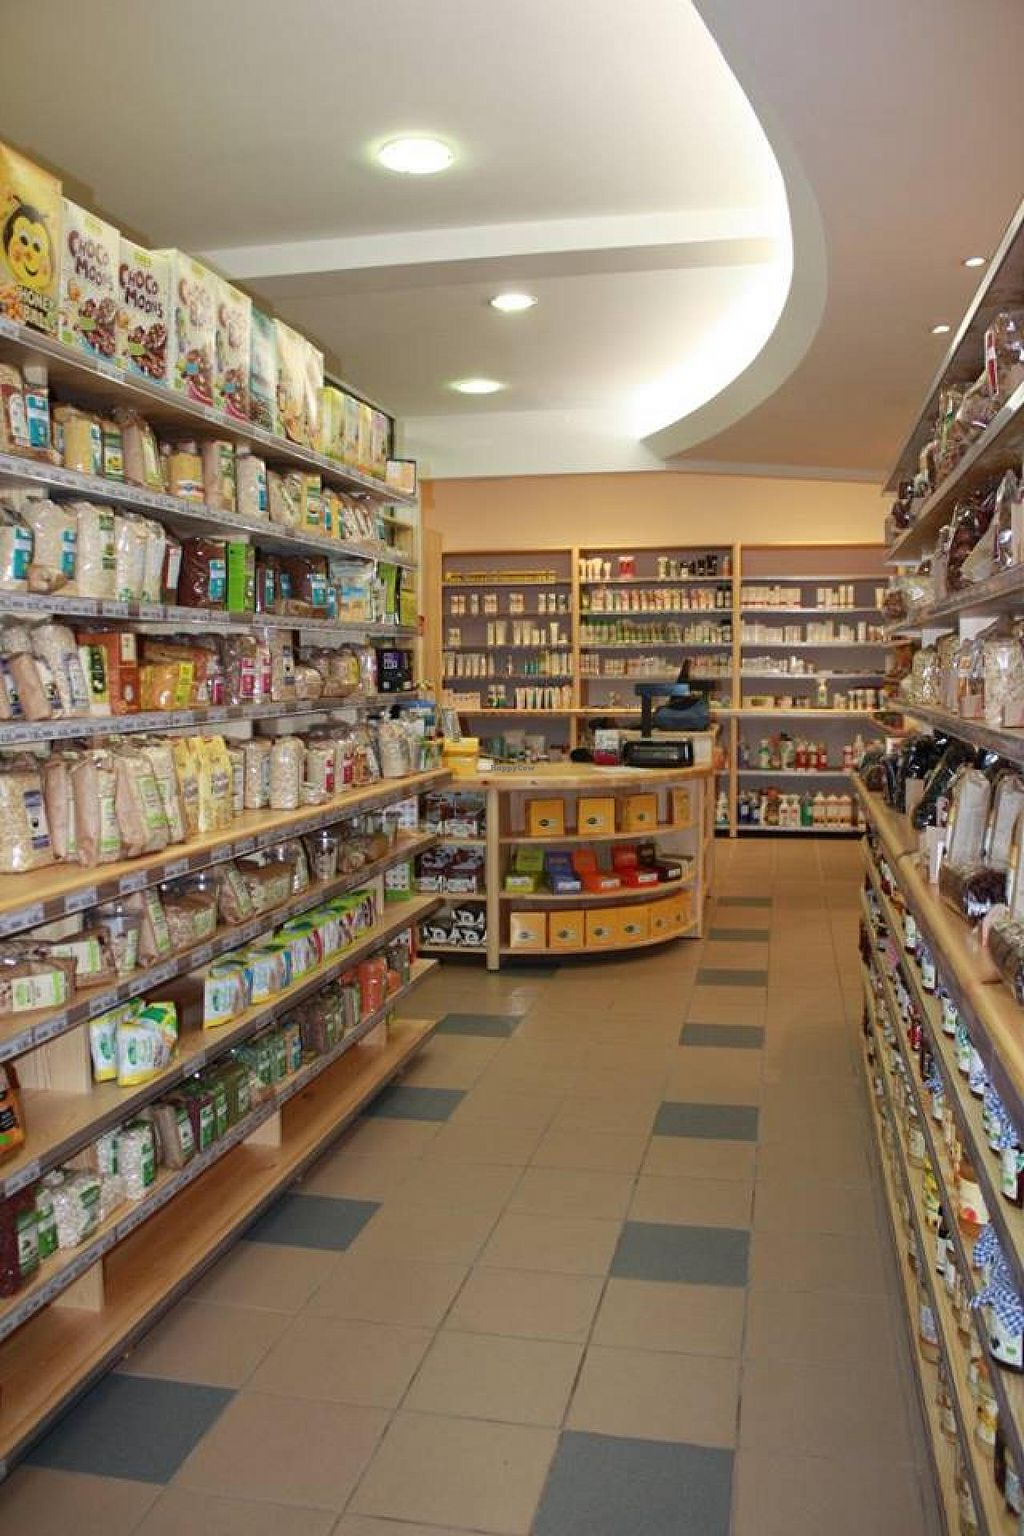 """Photo of ekoAleja Gdansk  by <a href=""""/members/profile/_nina_"""">_nina_</a> <br/>Interior view <br/> January 25, 2015  - <a href='/contact/abuse/image/55112/91406'>Report</a>"""